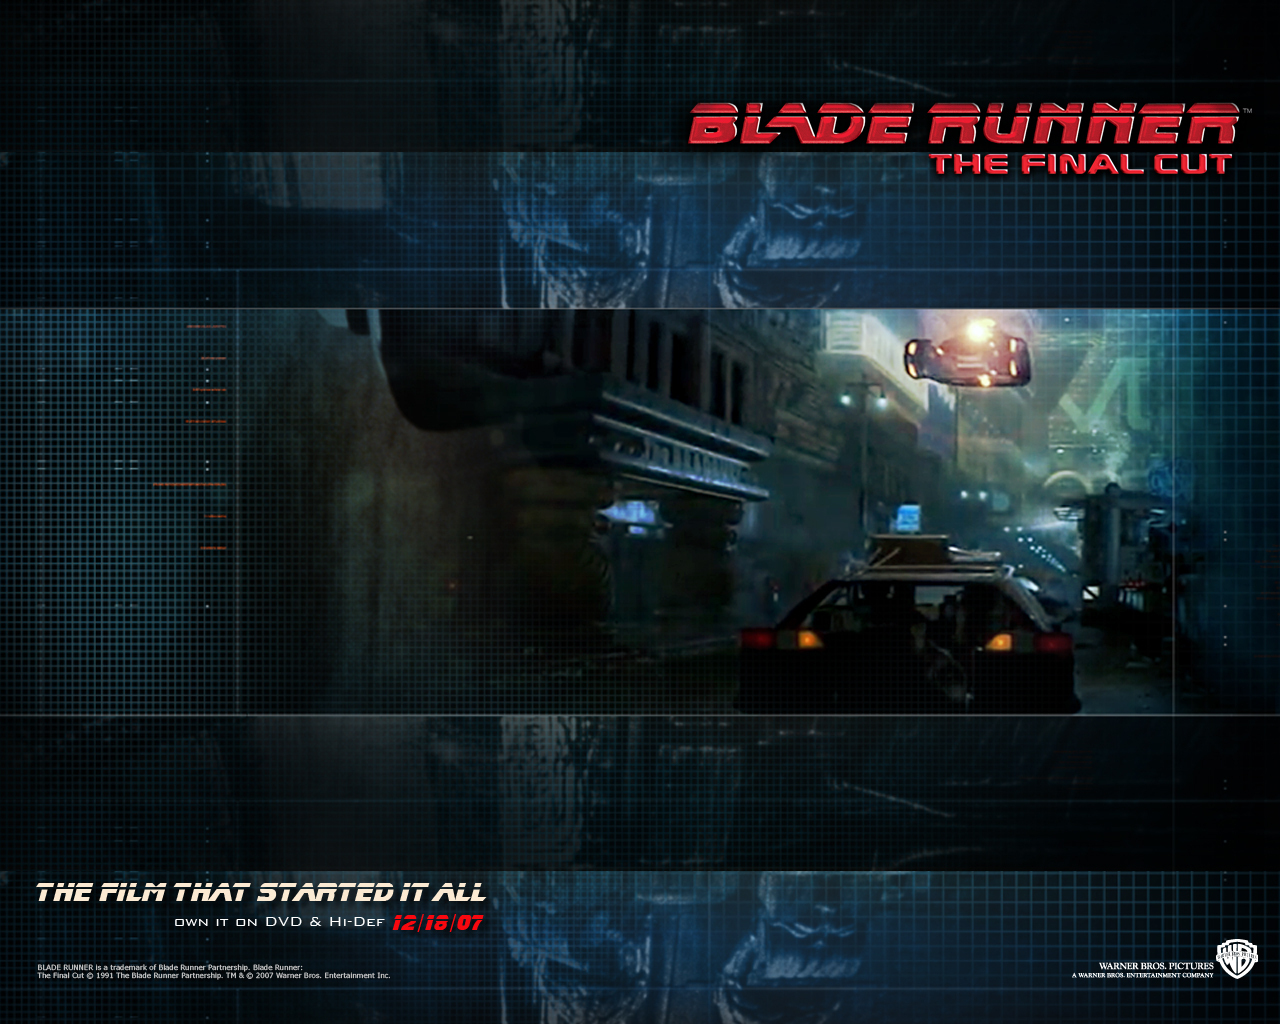 Official Blade Runner Wallpaper   Blade Runner Wallpaper 8207510 1280x1024